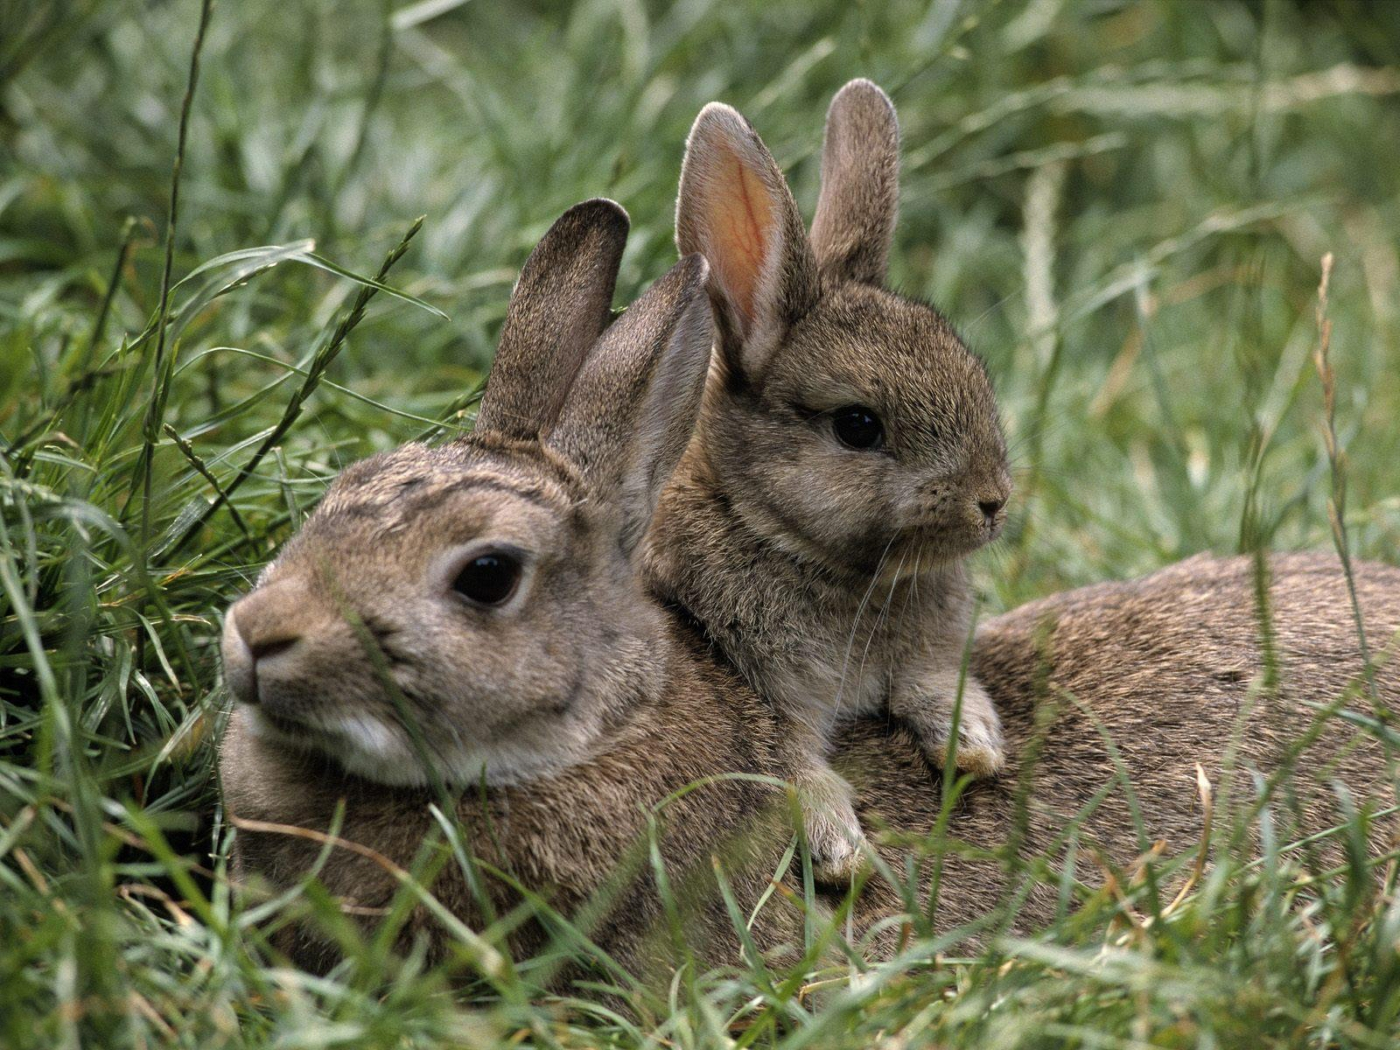 36721 download wallpaper Animals, Rabbits screensavers and pictures for free